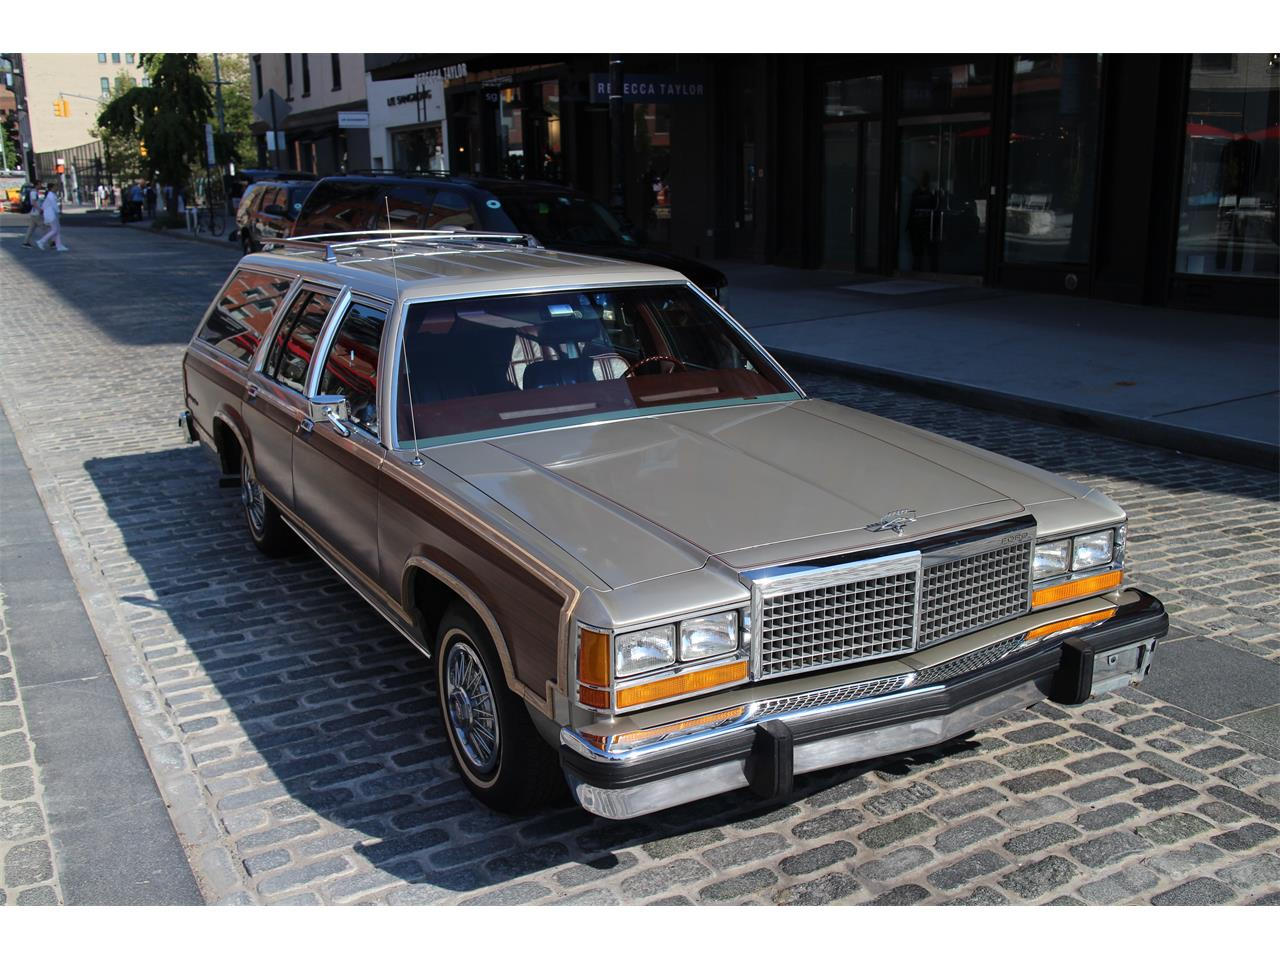 Large Picture of 1981 Ford LTD located in New York - $25,000.00 - R1S9